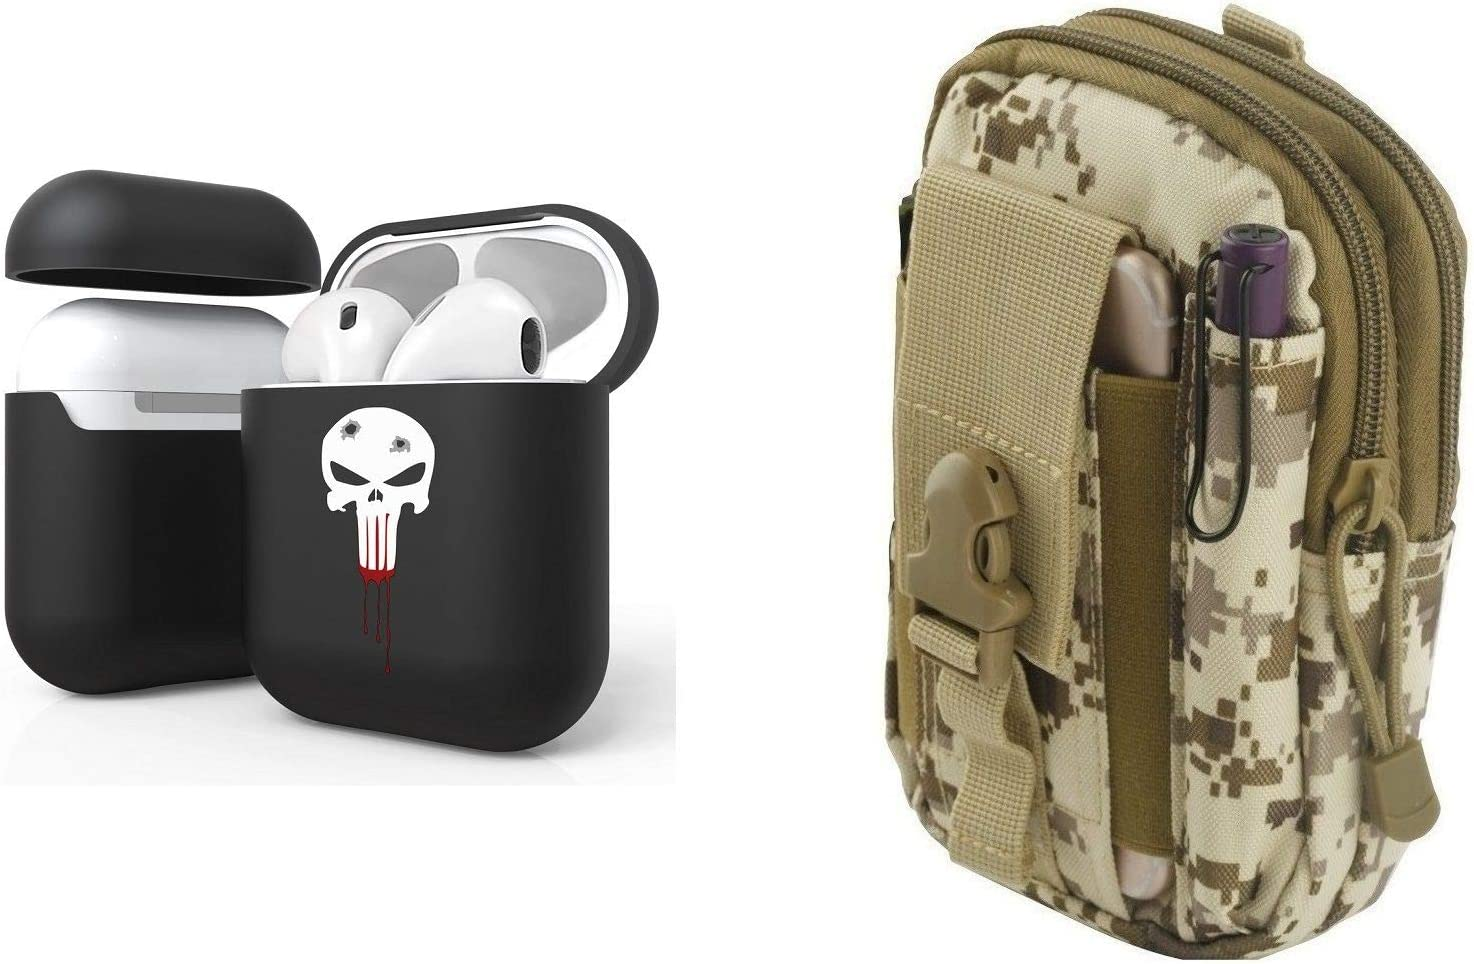 Bemz [Slim Lightweight] Protective Case Cover Bundle for Apple AirPods (Gen 1, 2) with 600D Waterproof Nylon Material Tactical Electronics Storage Pouch and Lens Wipe - (Bloody Skull/Desert Camo)